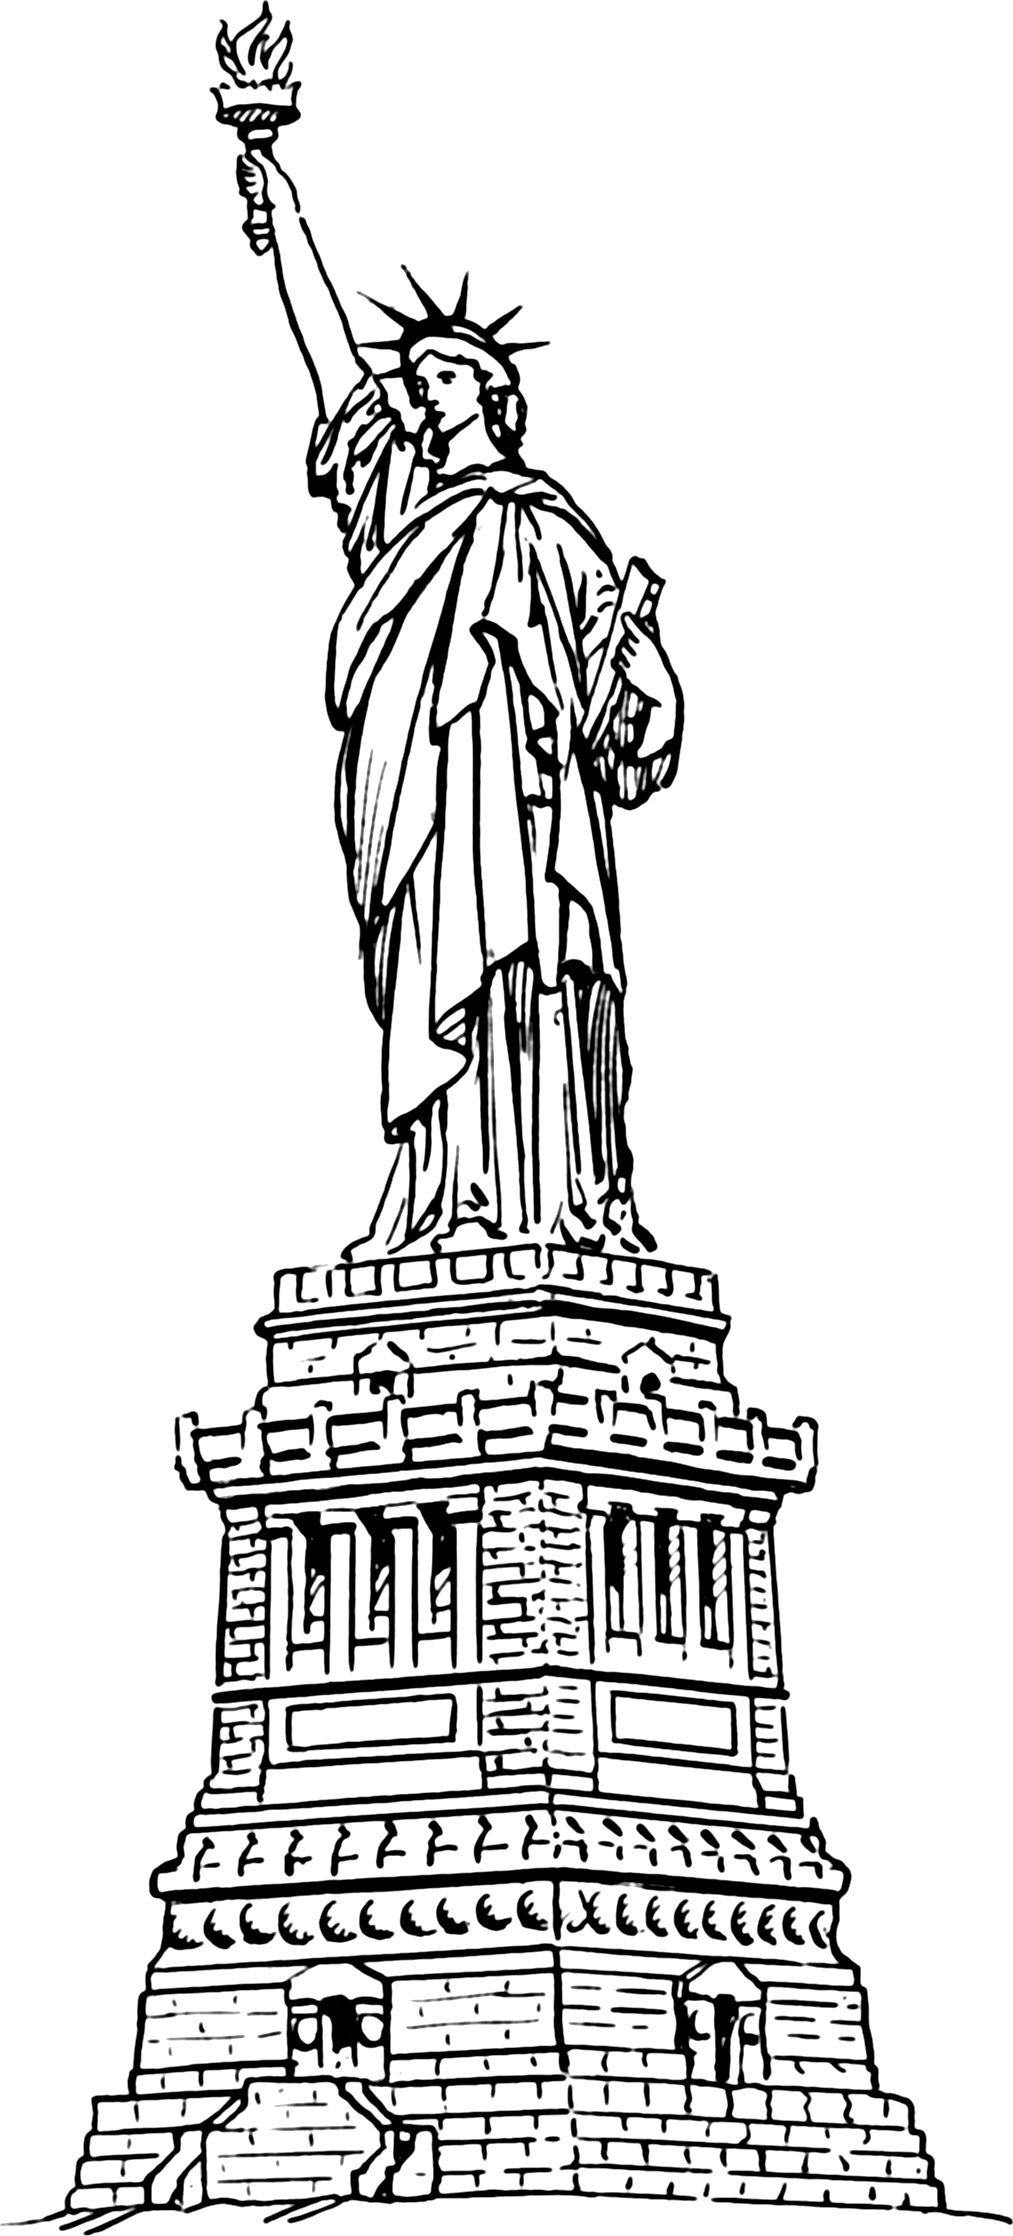 Clipart statue of liberty silhouette.